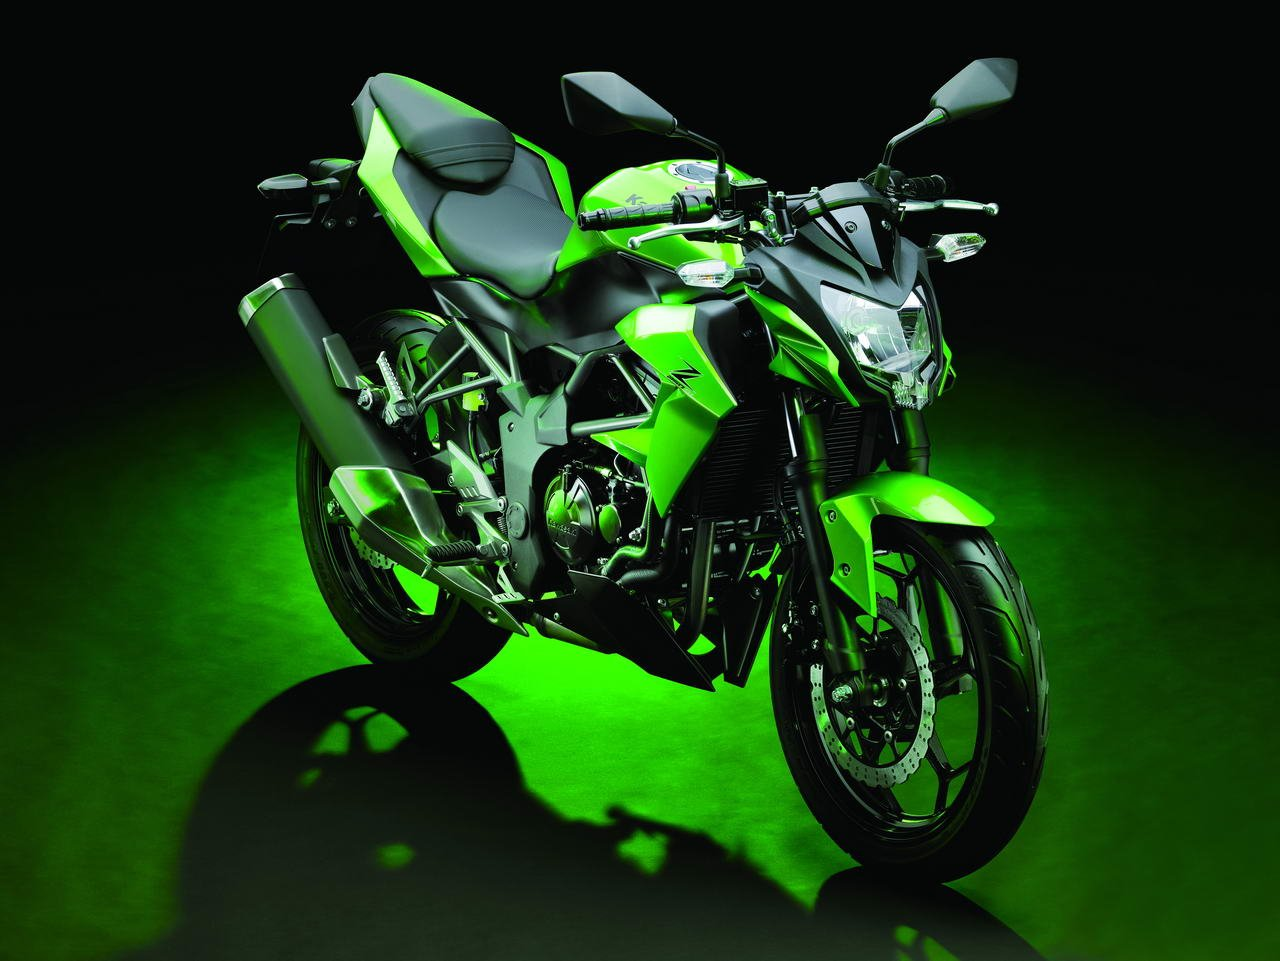 Listino Kawasaki Versys Base Granturismo on-off - image 13628_1 on http://moto.motori.net